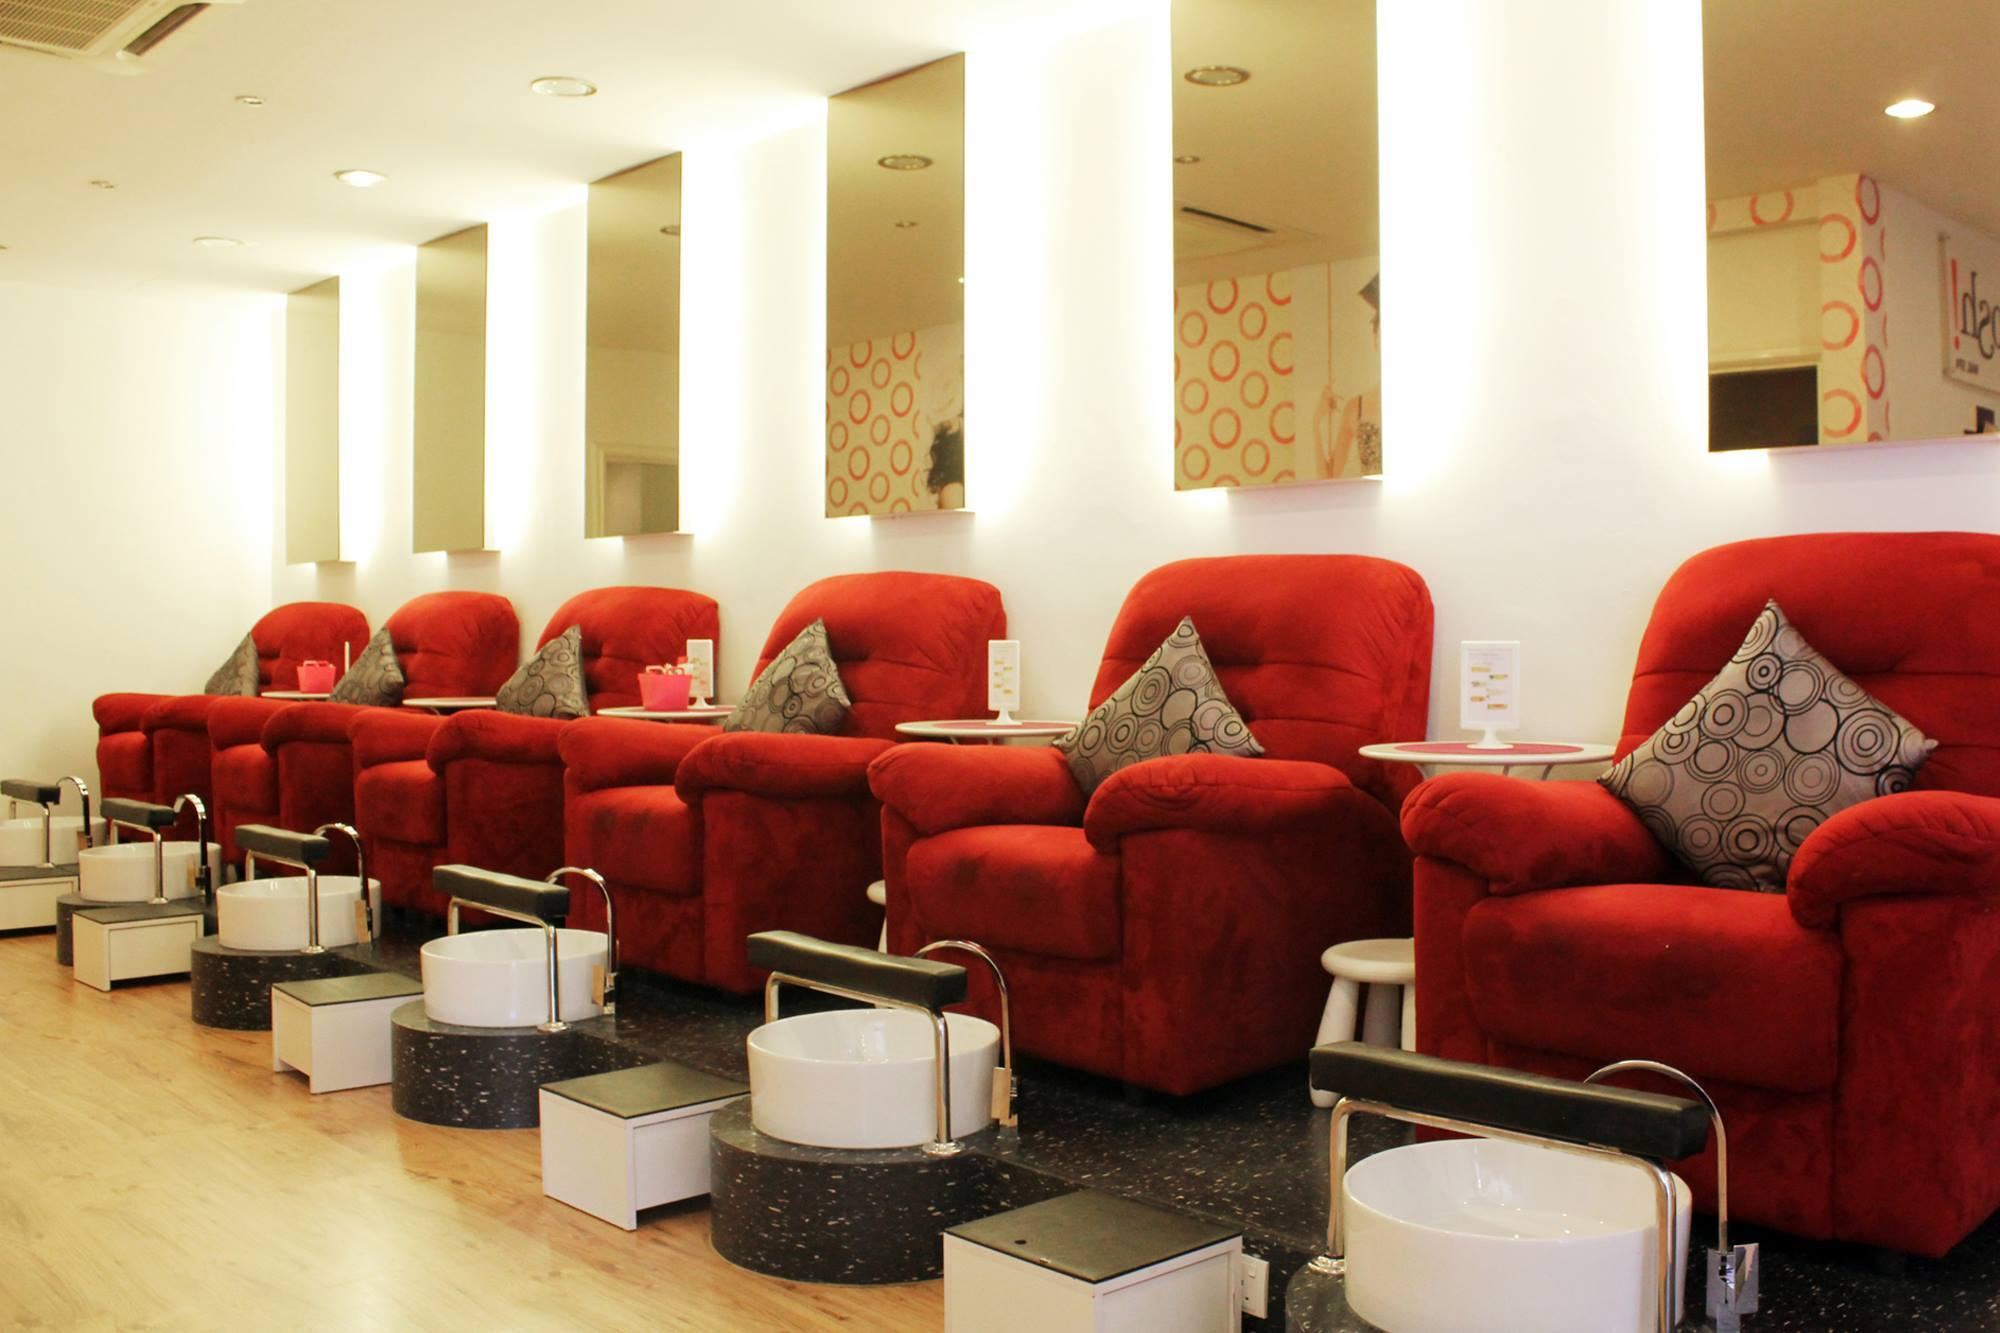 The best spas, salons and beauty services